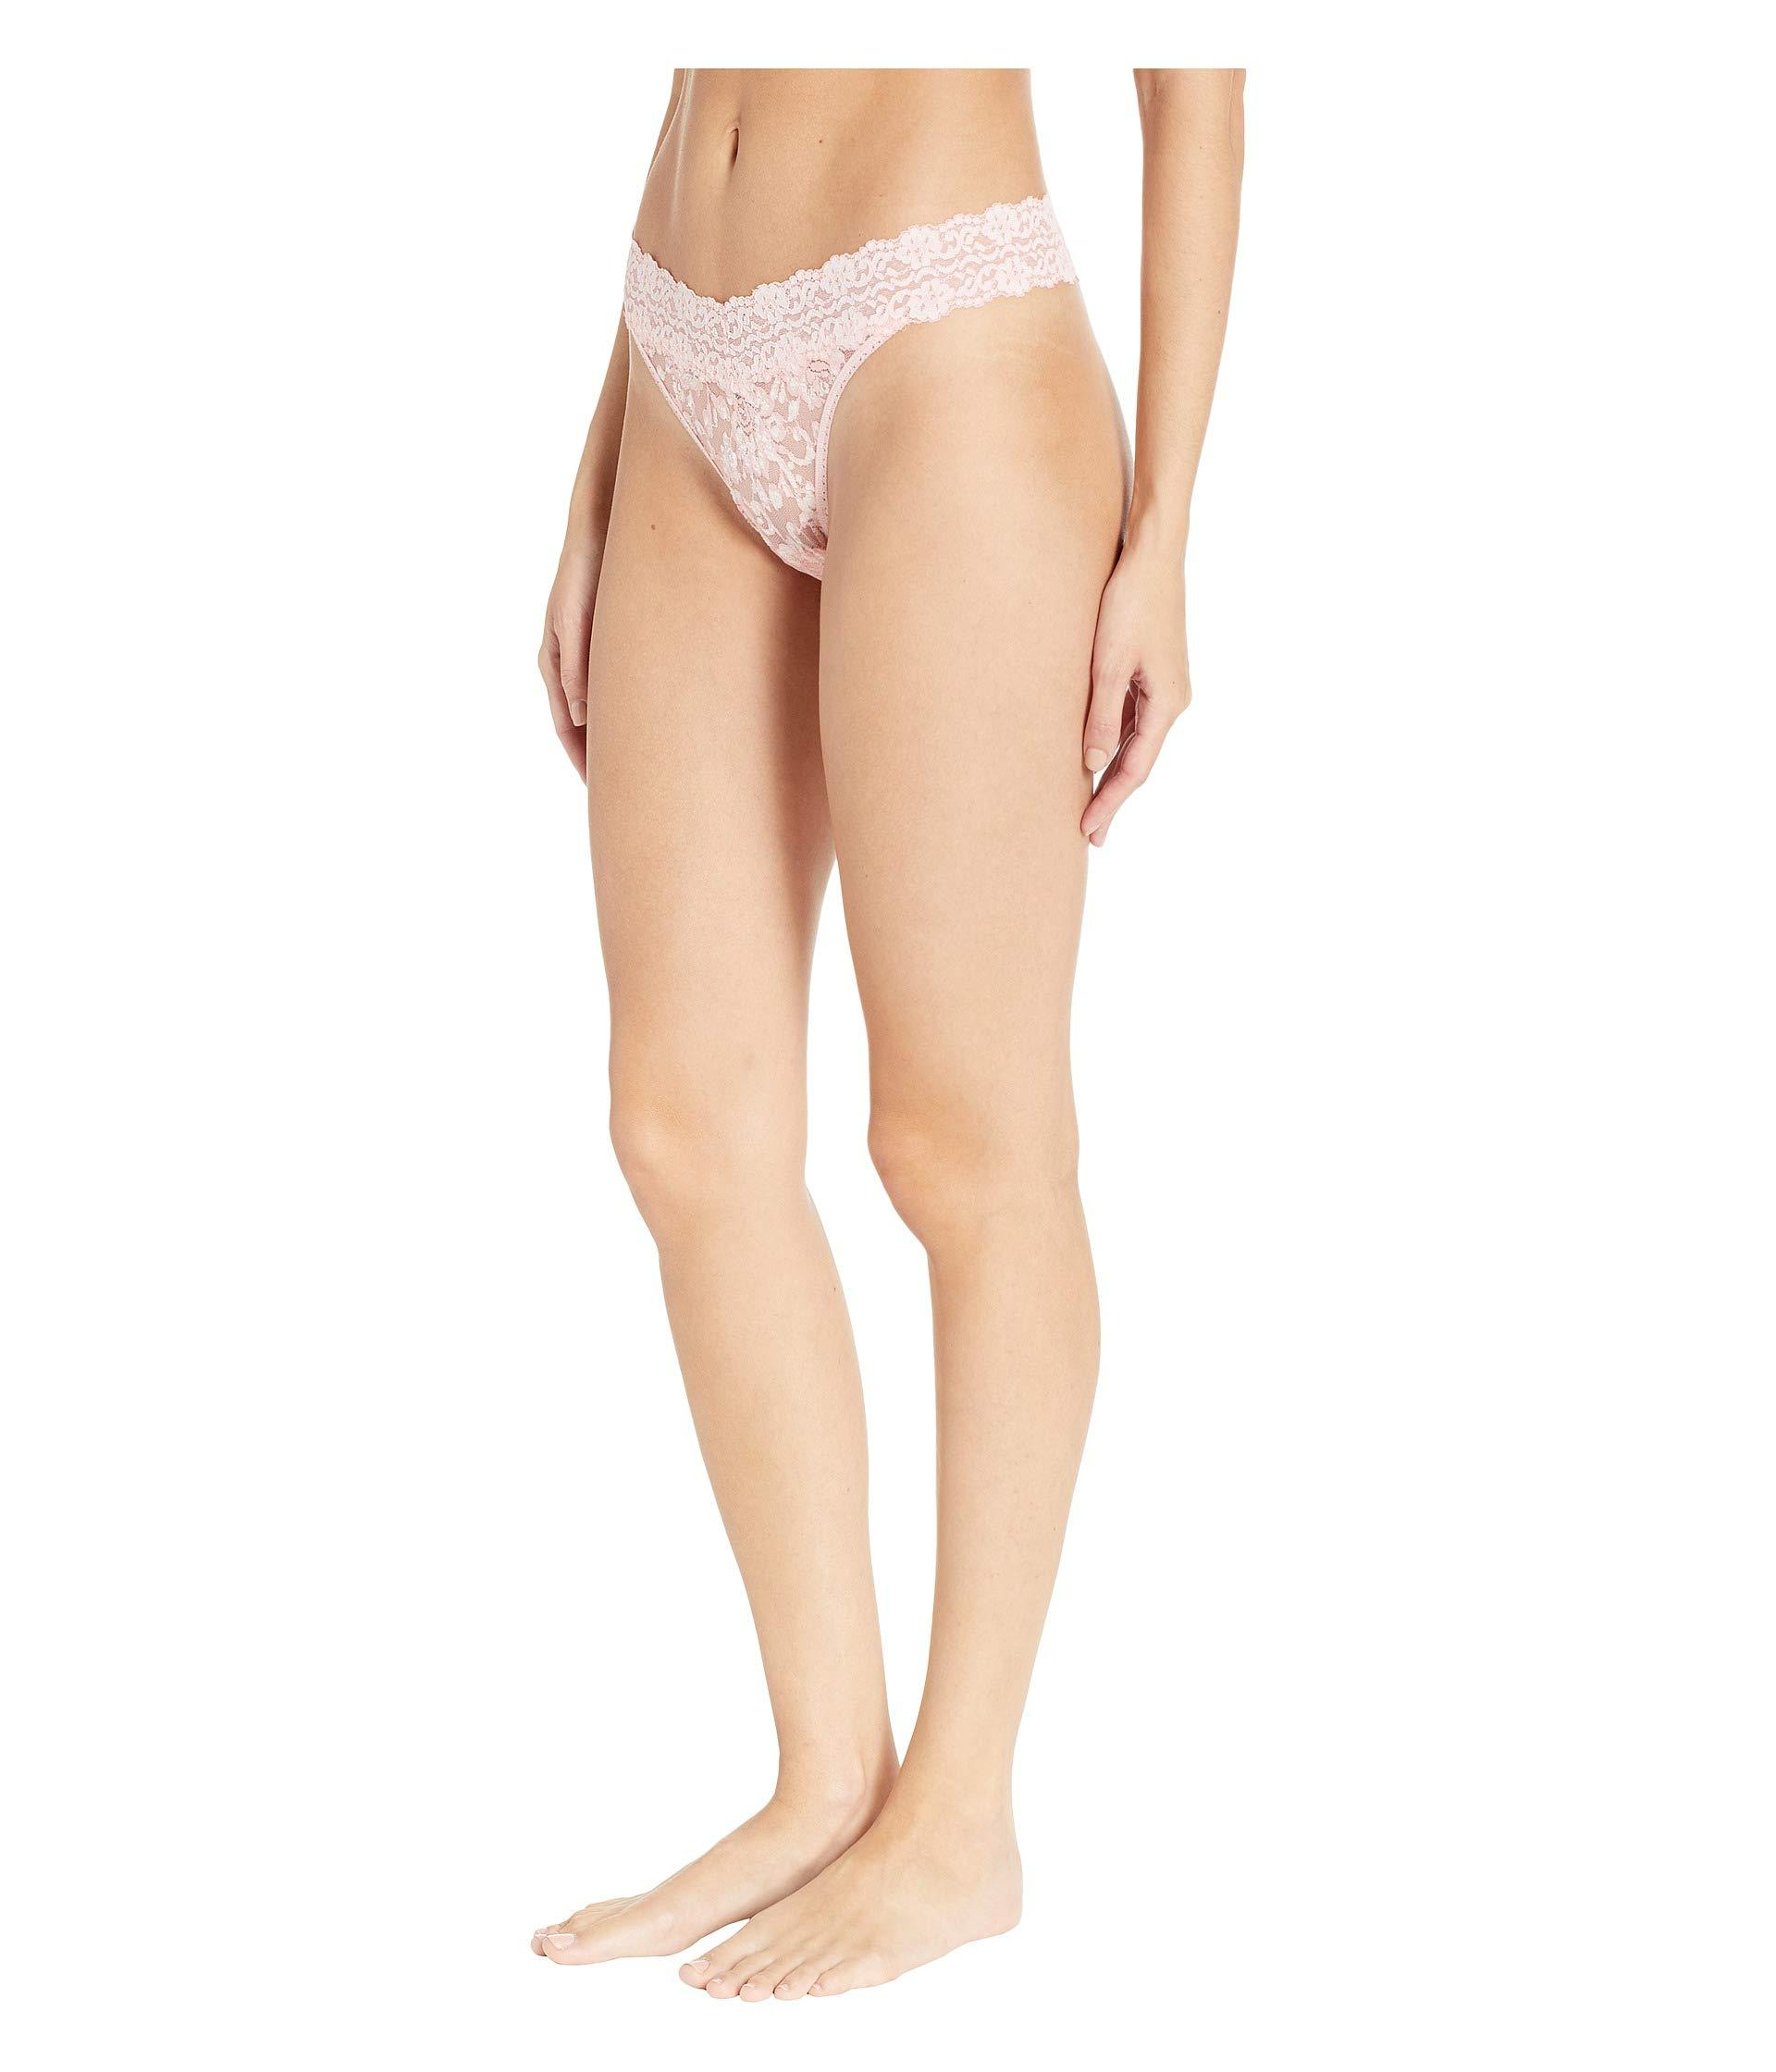 Lyst - Hanky Panky Cross-dyed Signature Lace Original Rise Thong  (taupe vanilla) Women s Underwear in Natural 196496c7b